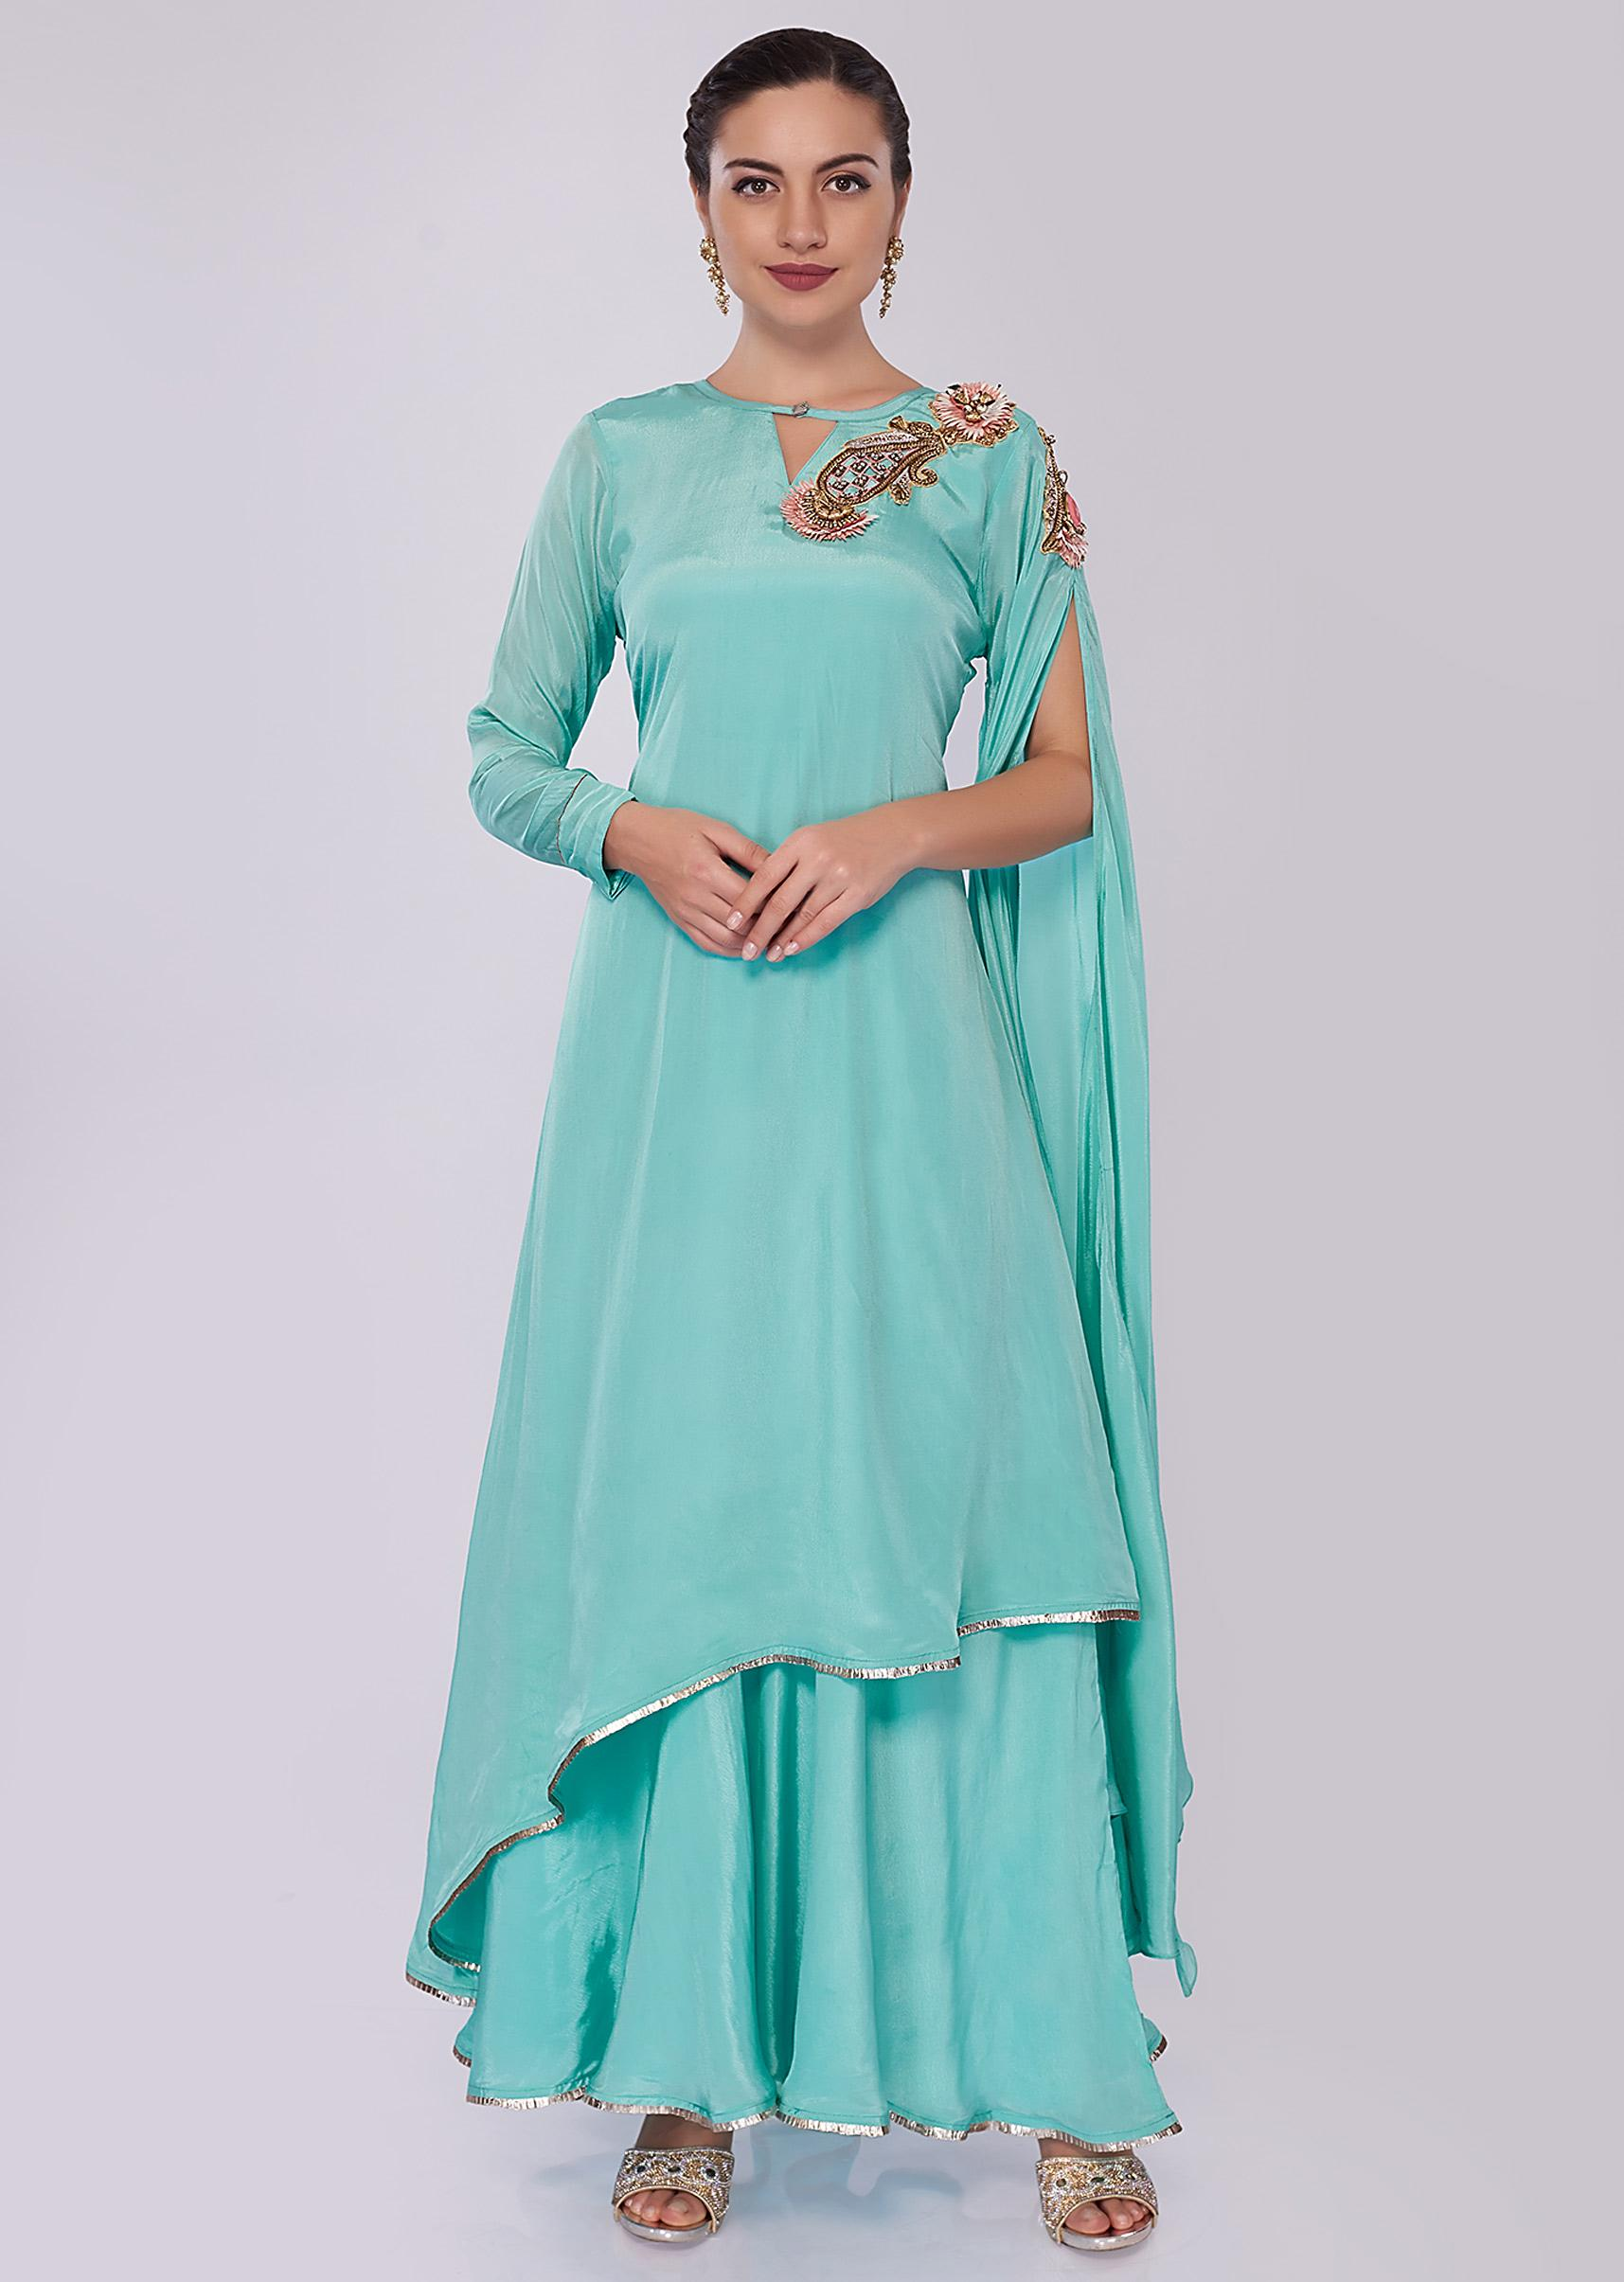 6f8fbb84e2 Sky blue double layer tunic dress featuring in satin crepe only on KalkiMore  Detail